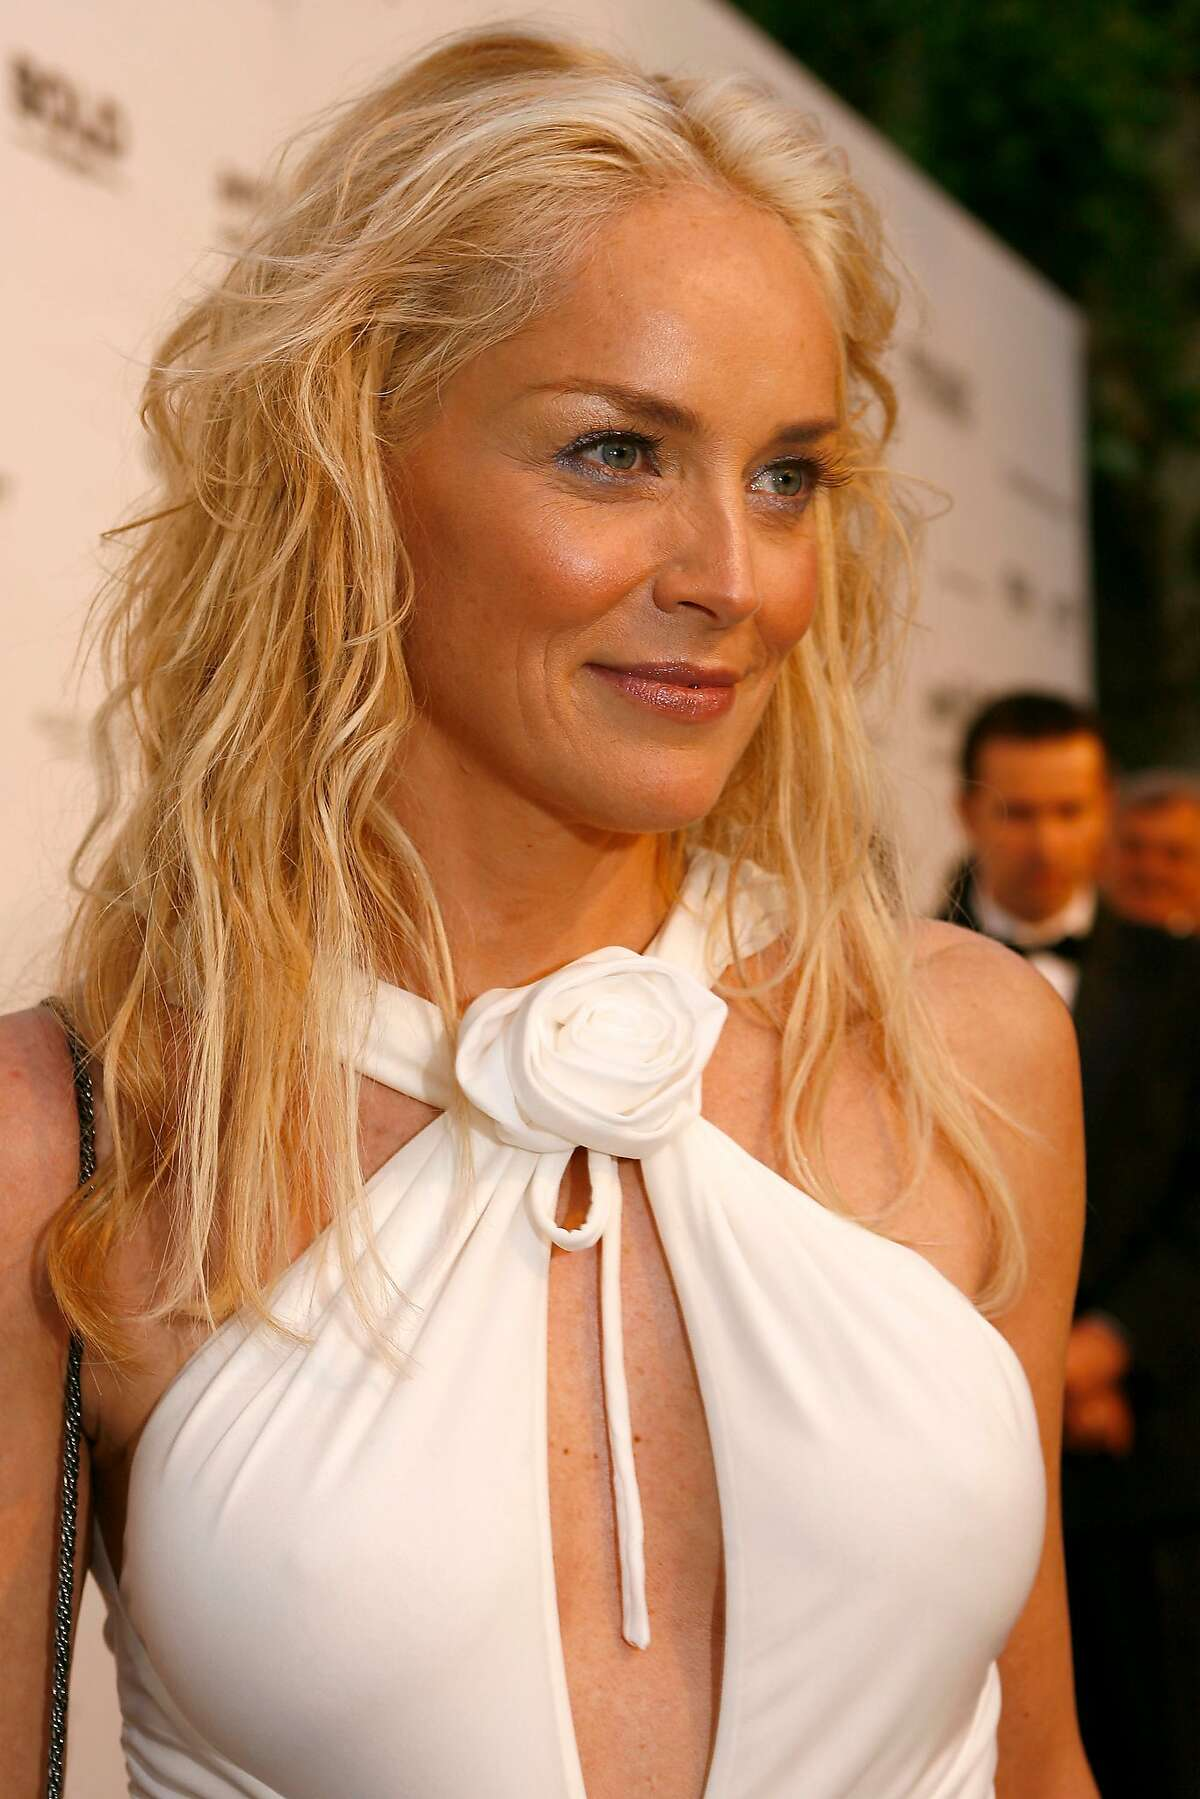 24 things you might not know about Sharon Stone March 10 is Sharon Stone's birthday. She turned 60 in 2016. Here are some facts you might not know about the actress.